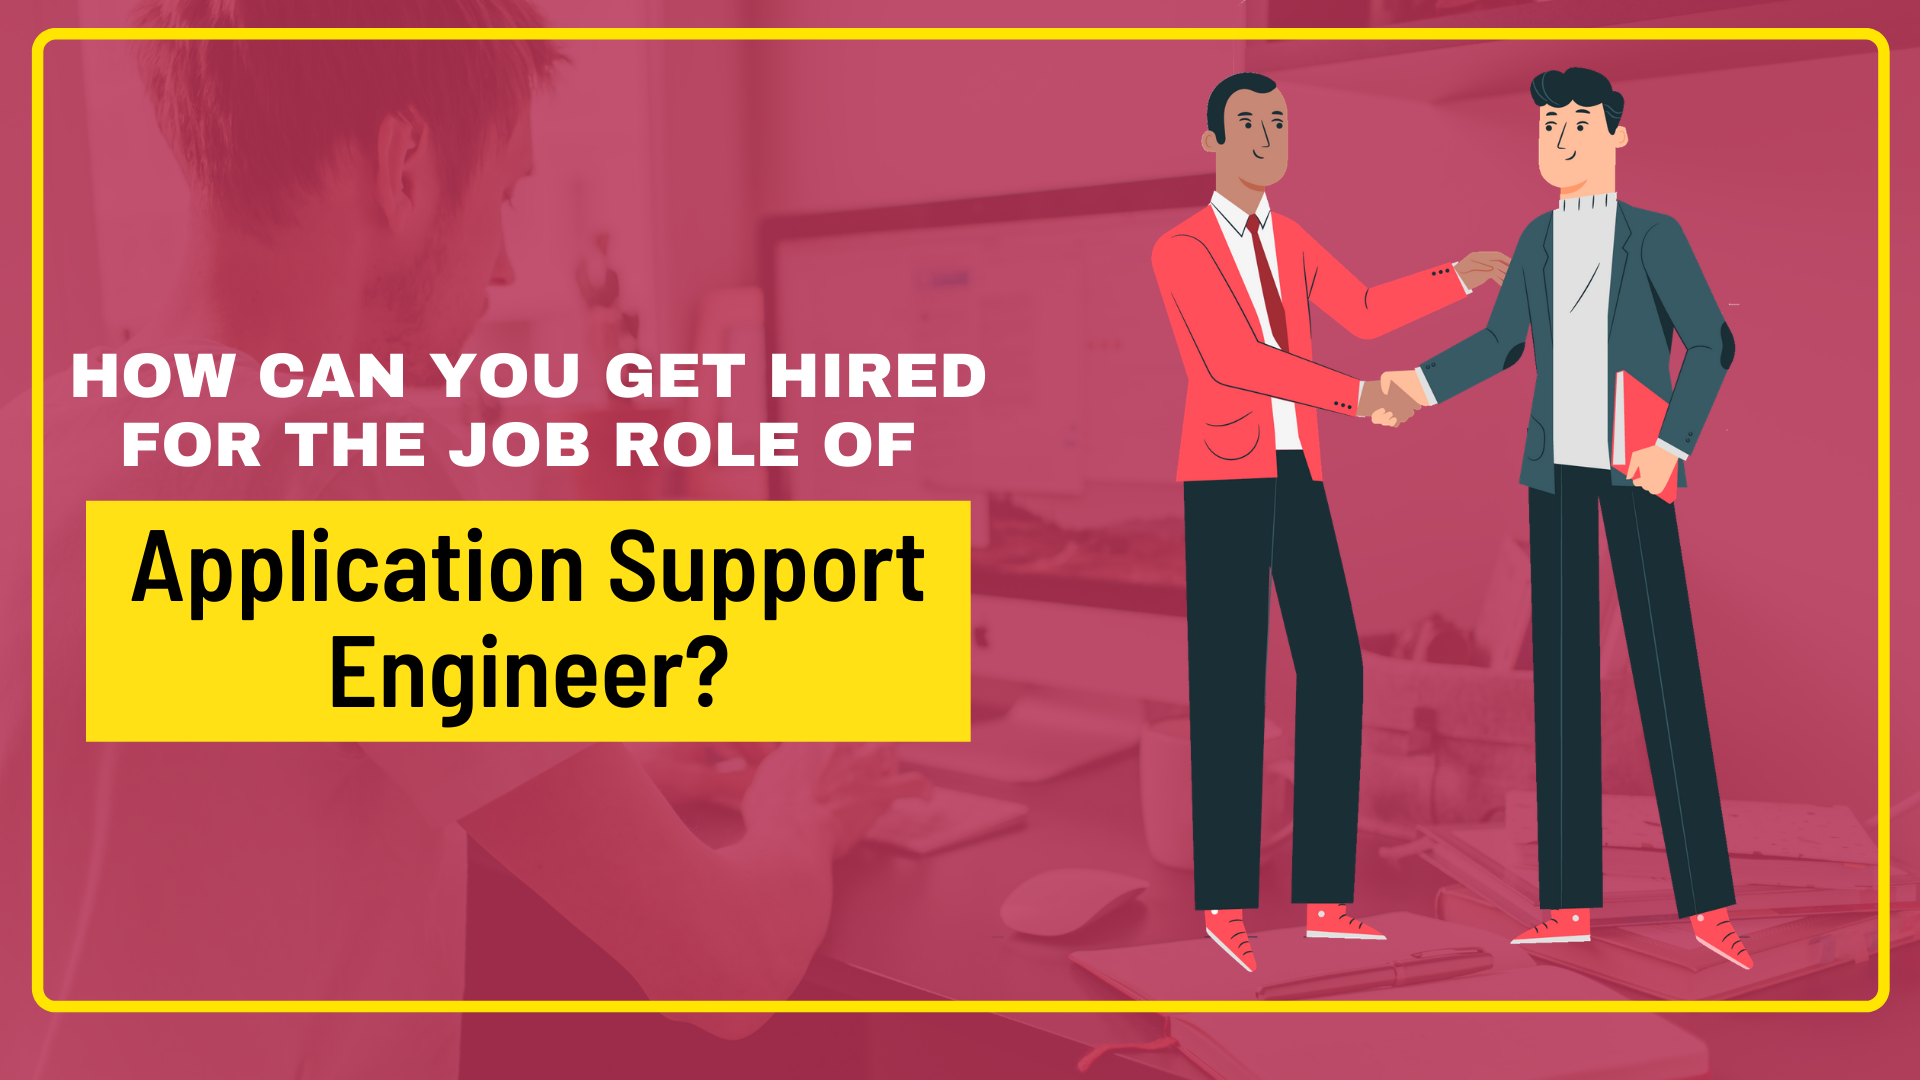 How Can You Get Hired For The Job Role Of Application Support Engineer?